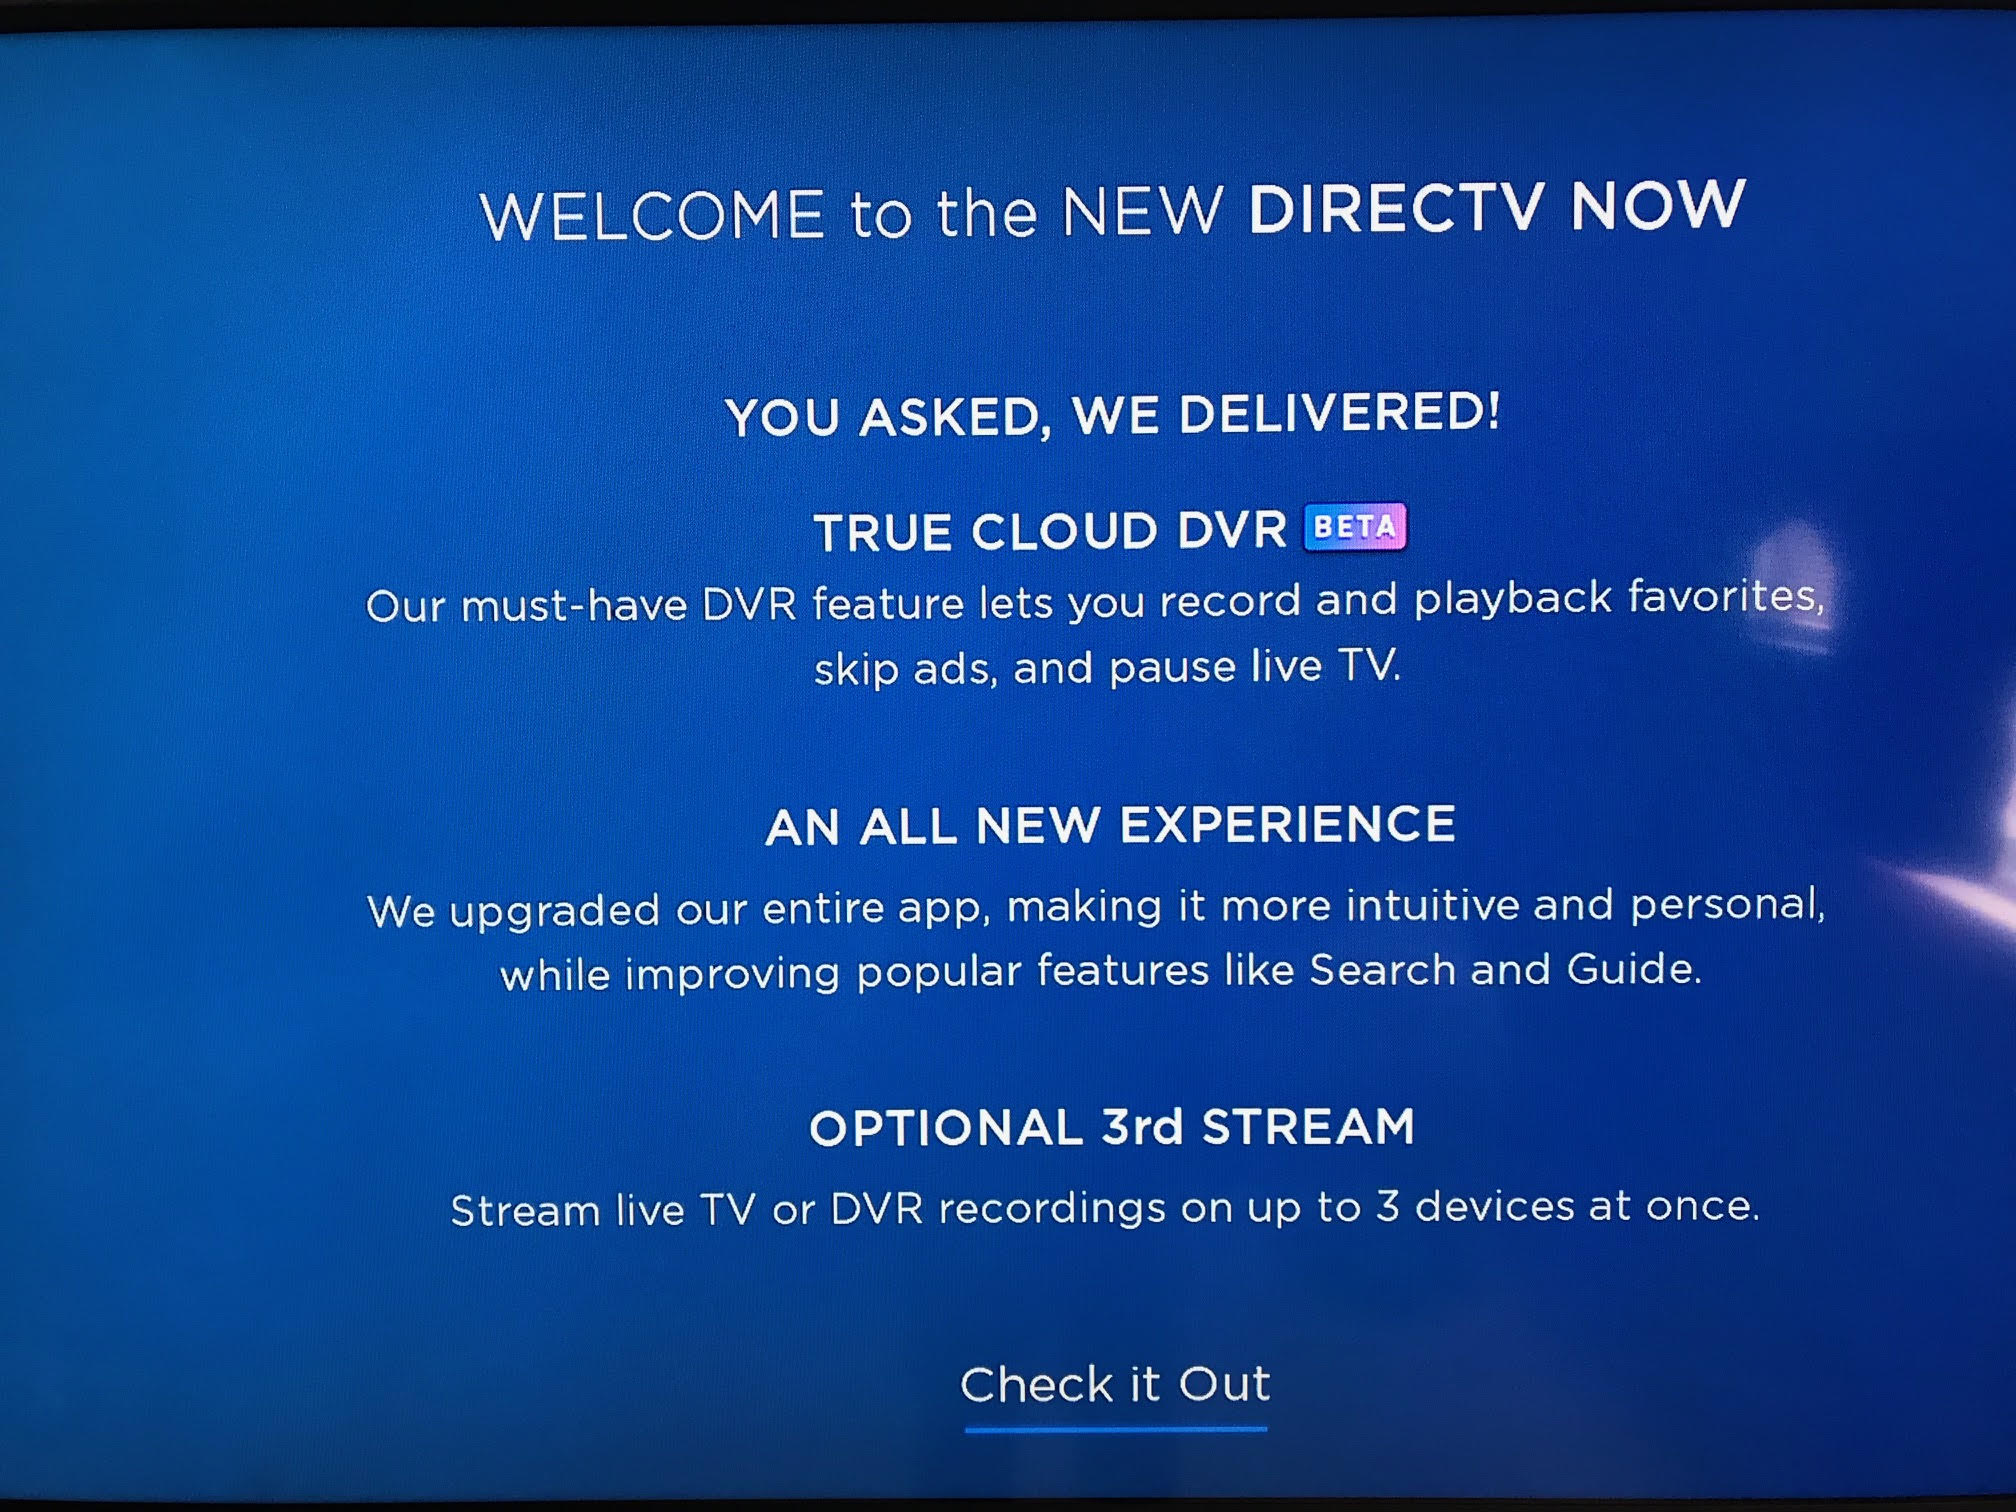 Pay attention to how the DVR is just listed as included. That seems to  confirm what we reported before about DIRECTV ...